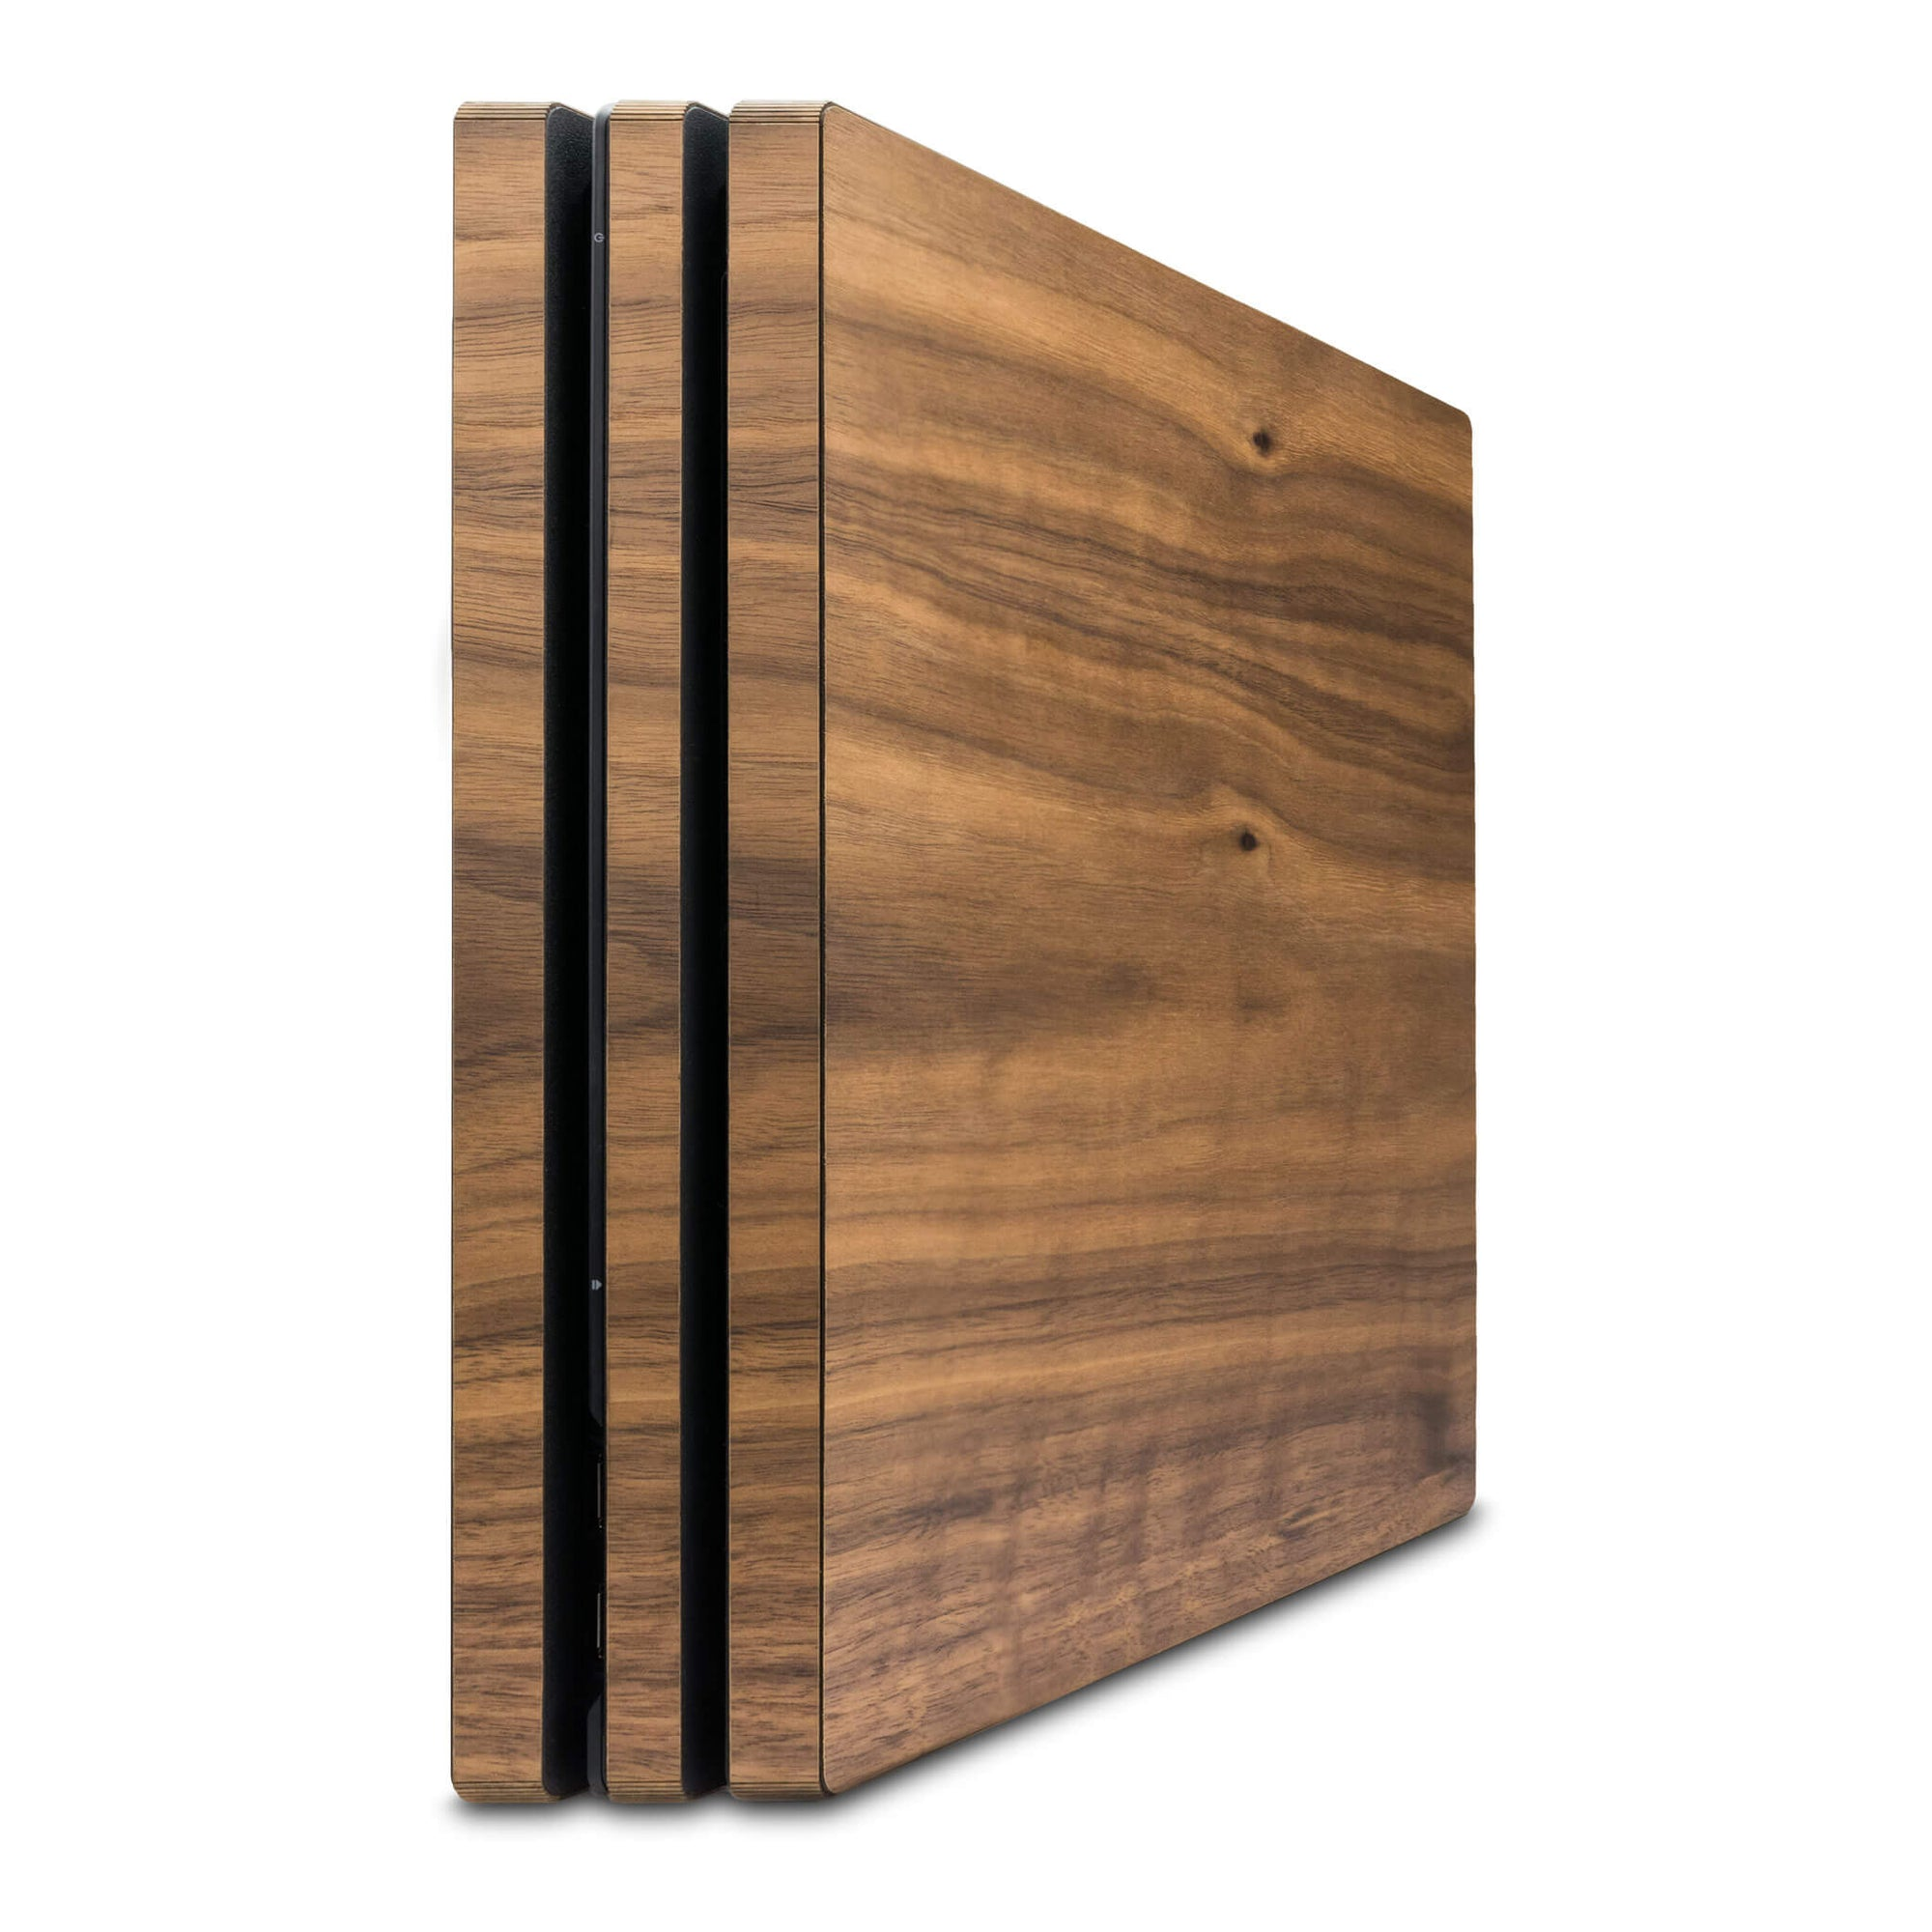 Playstation 4 Pro Walnut Wood Cover